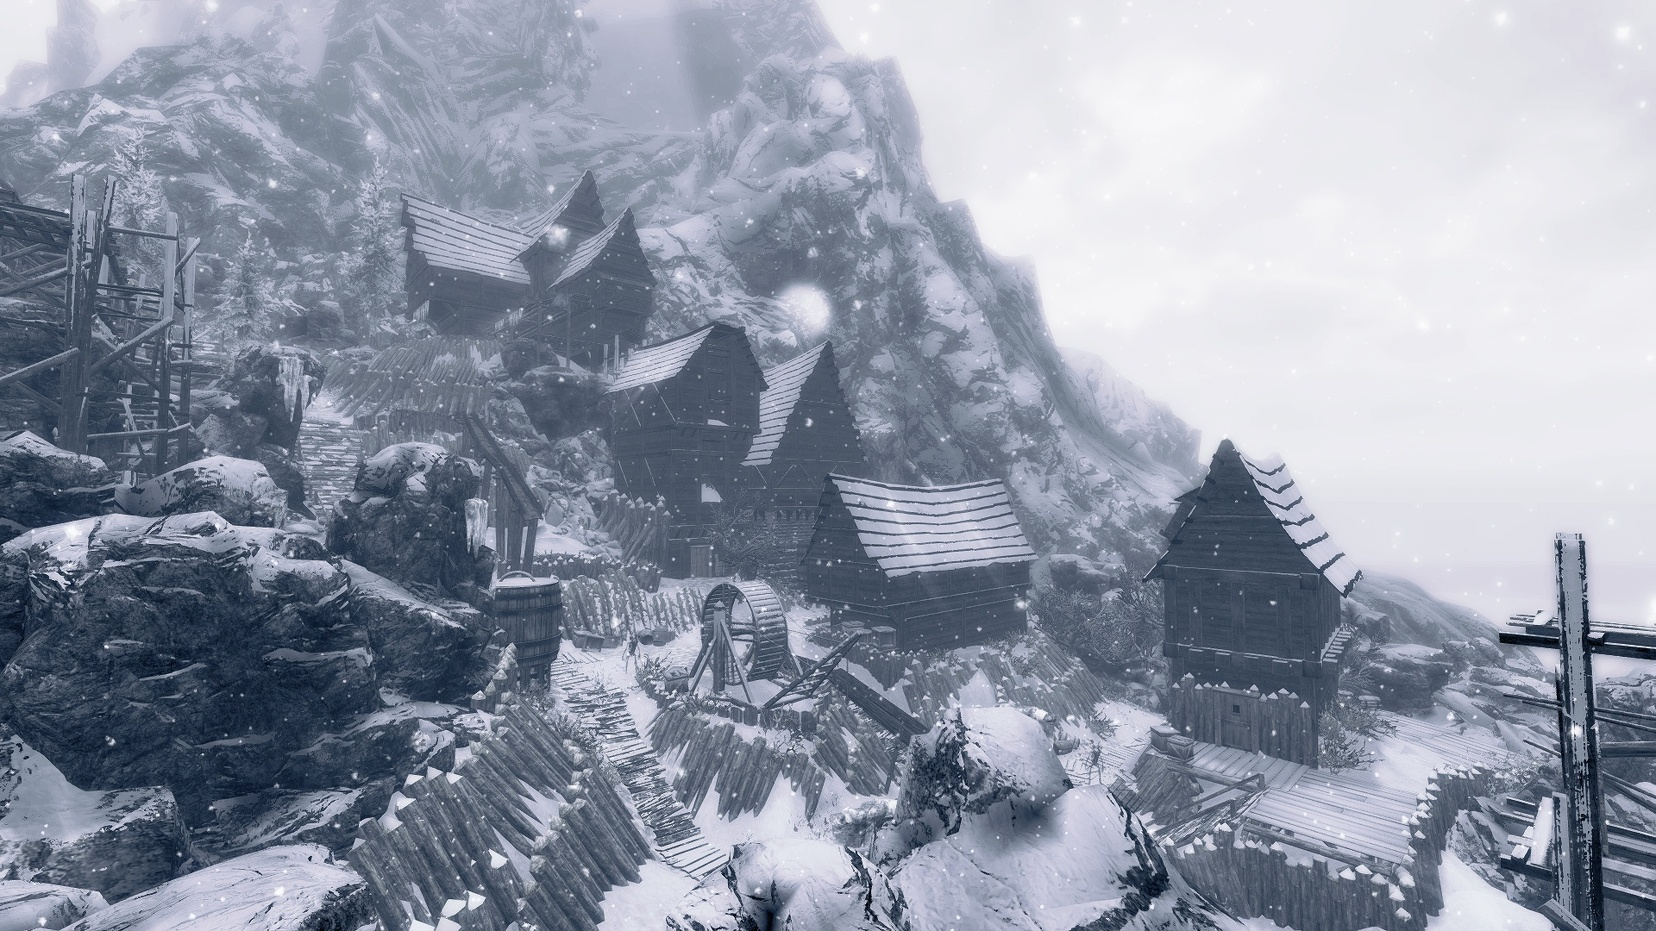 Skyrim mod Enderal: Forgotten Stories has us hooked - Polygon